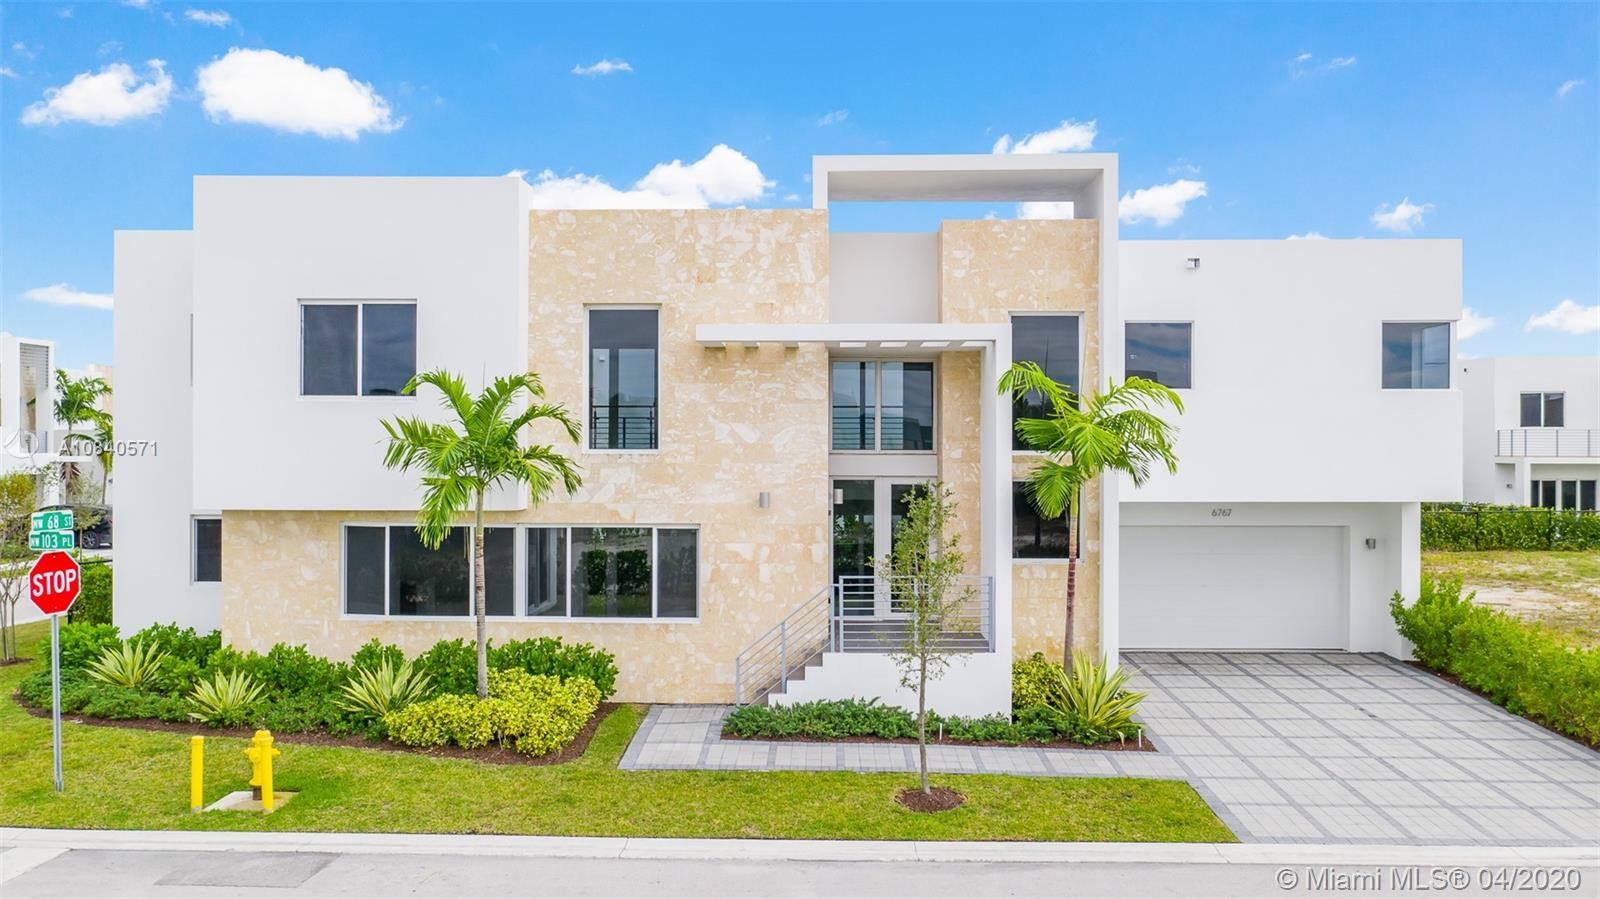 NEWLY Constructed NEOVITA DORAL combines the highest level of modern architecture & design w/ a new collection of unique 2 story residences with pool. Alta Developers brings this exclusive gated community to the City of Doral w/ a private 2 story clubhouse equipped w/ indoor & outdoor amenities-State of the art fitness & sauna, upscale wet bar, sophisticated game & media rooms, lounge areas, kitchen & dining w/ outdoor spaces, pool & spa. Custom homes feature imported porcelain flooring, wood and/or carpet in stairwell, 2nd floor hallways & bedrooms. S/S Bosh appliances, European cabinetry, s/s sink, Covered terrace, Impact Windows/Doors, 2 Car Garage. Centrally located, minutes from Downtown Doral, MIA Airport, major highways, Malls, Restaurants. Learn about buyer's incentives.